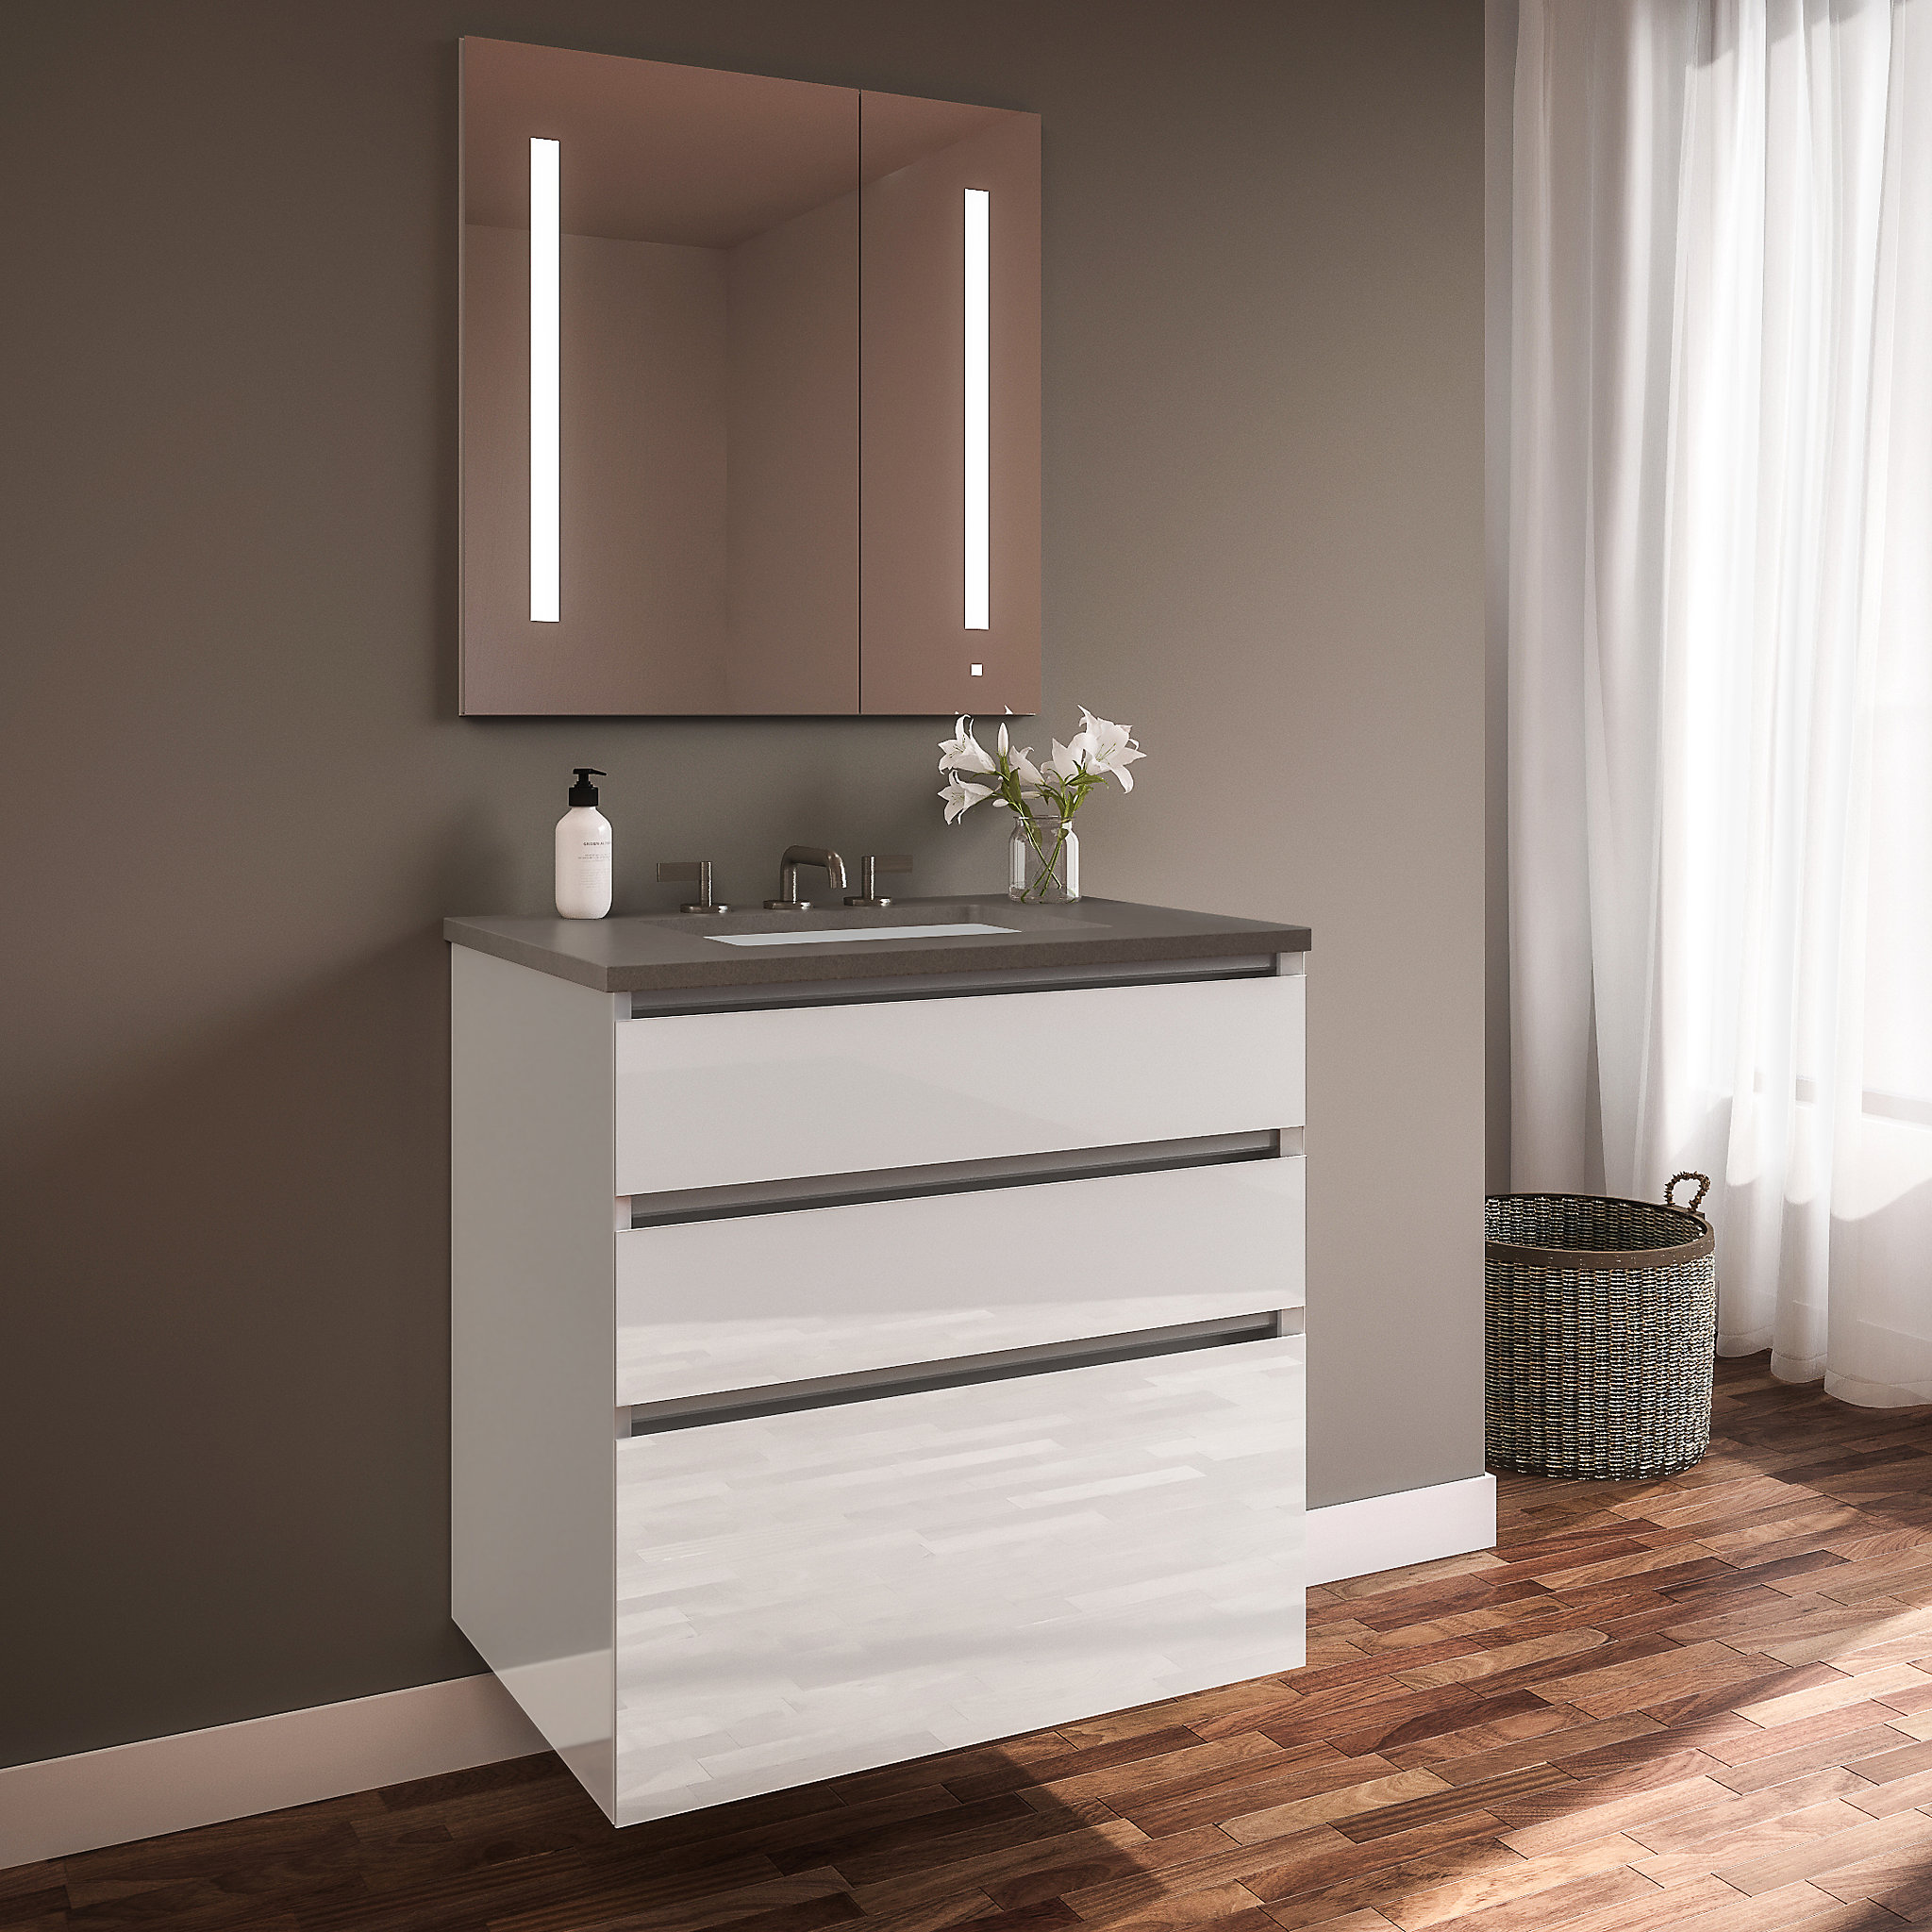 "Robern 24219100NB00003 Curated Cartesian Vanity, 24"" x 7-1/2"" x 21"", 24"" x 15"" x 21"", Three Drawer, White Glass, Tip Out Drawer,"